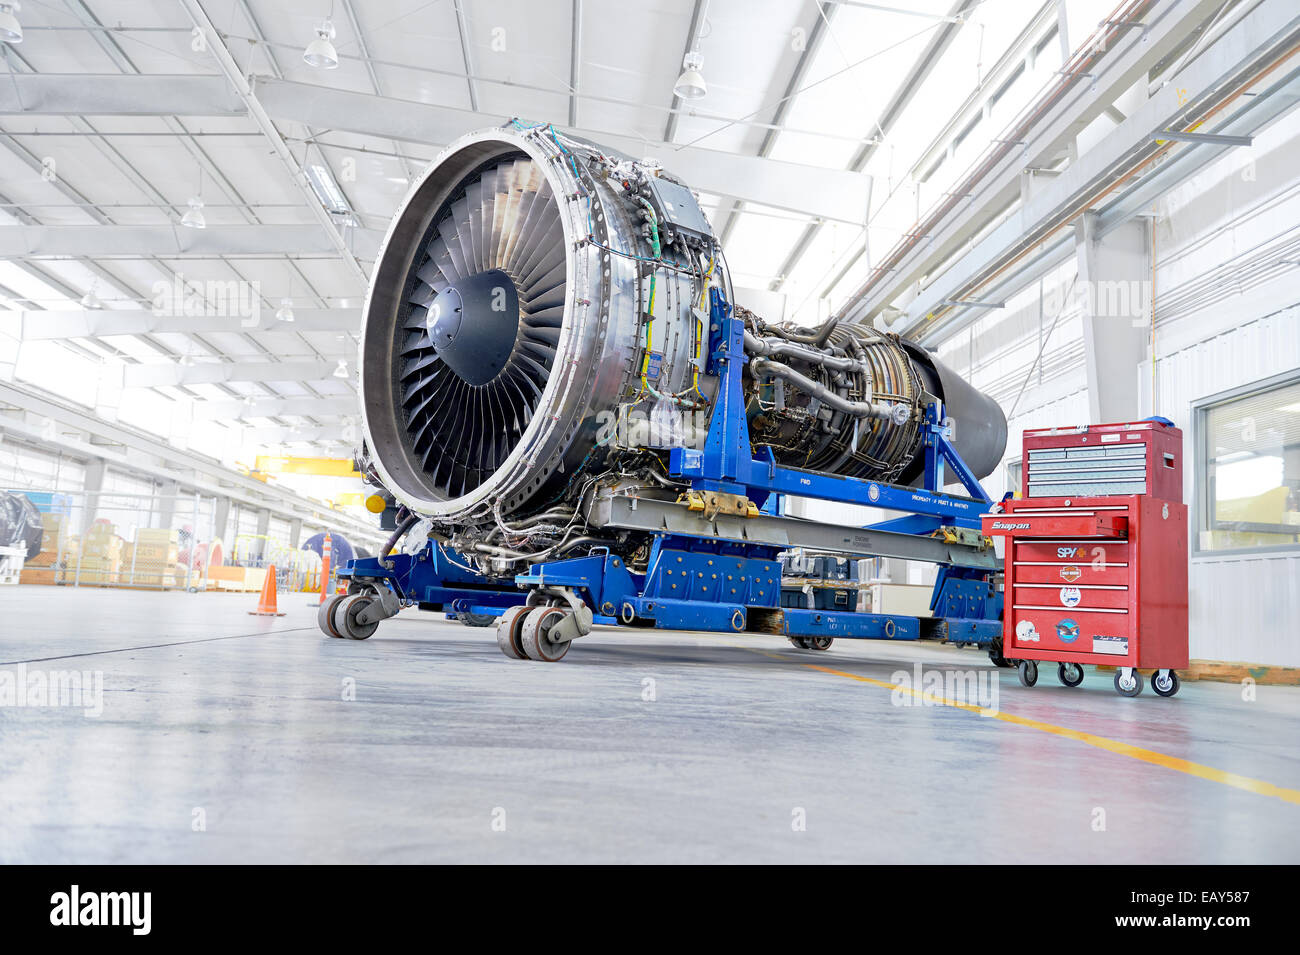 A jet engine ready to undergo maintenance - Stock Image